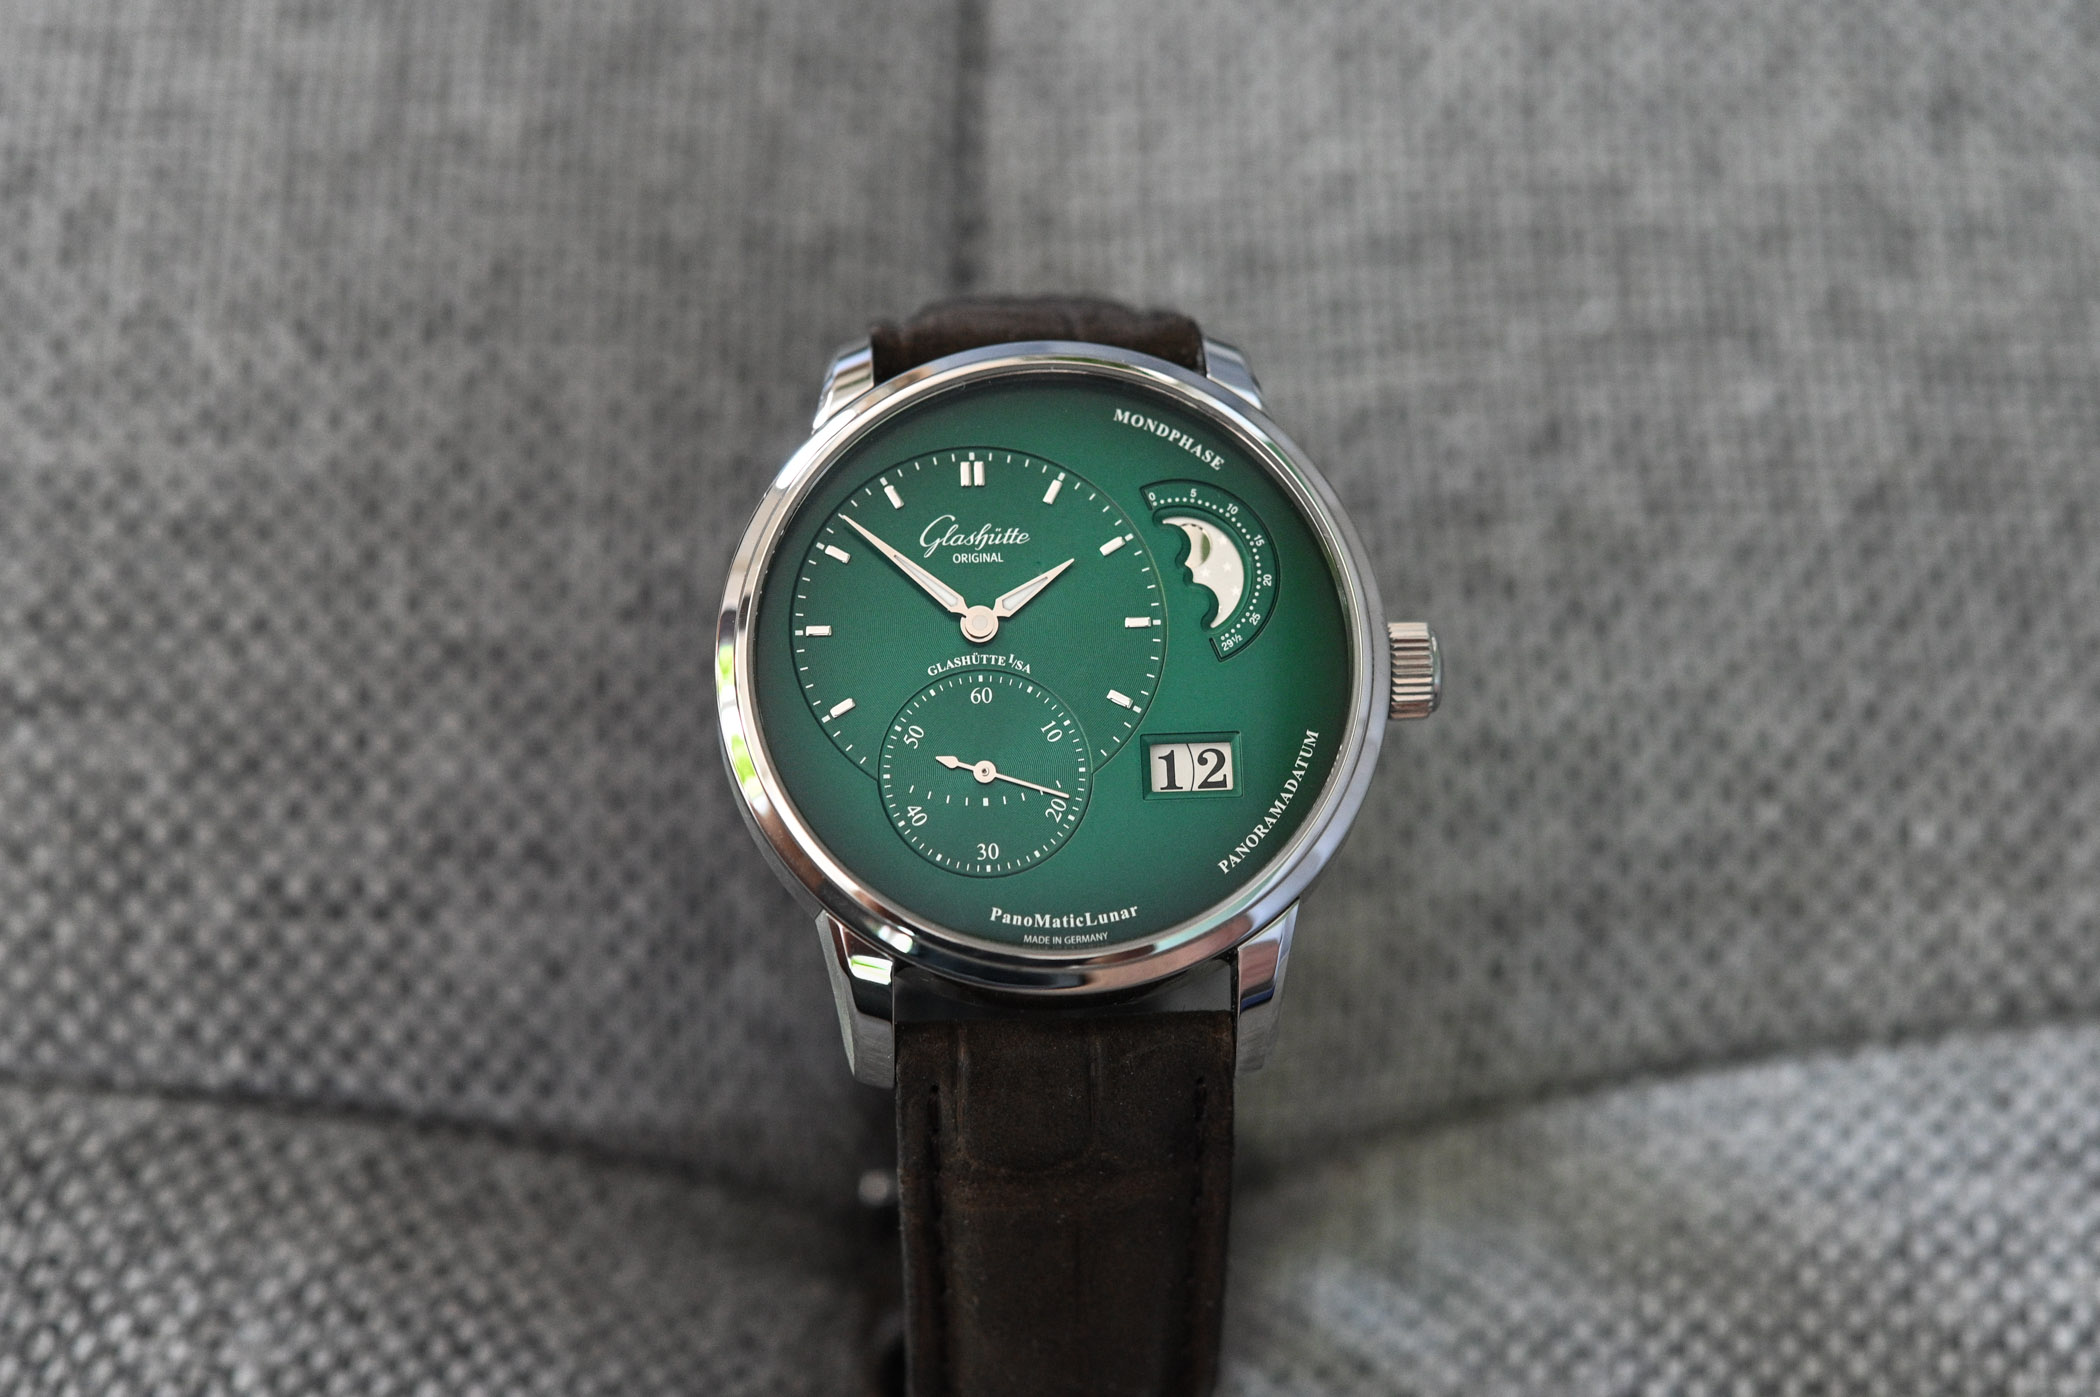 Hands On Glashutte Original Panomaticlunar Forest Green Price